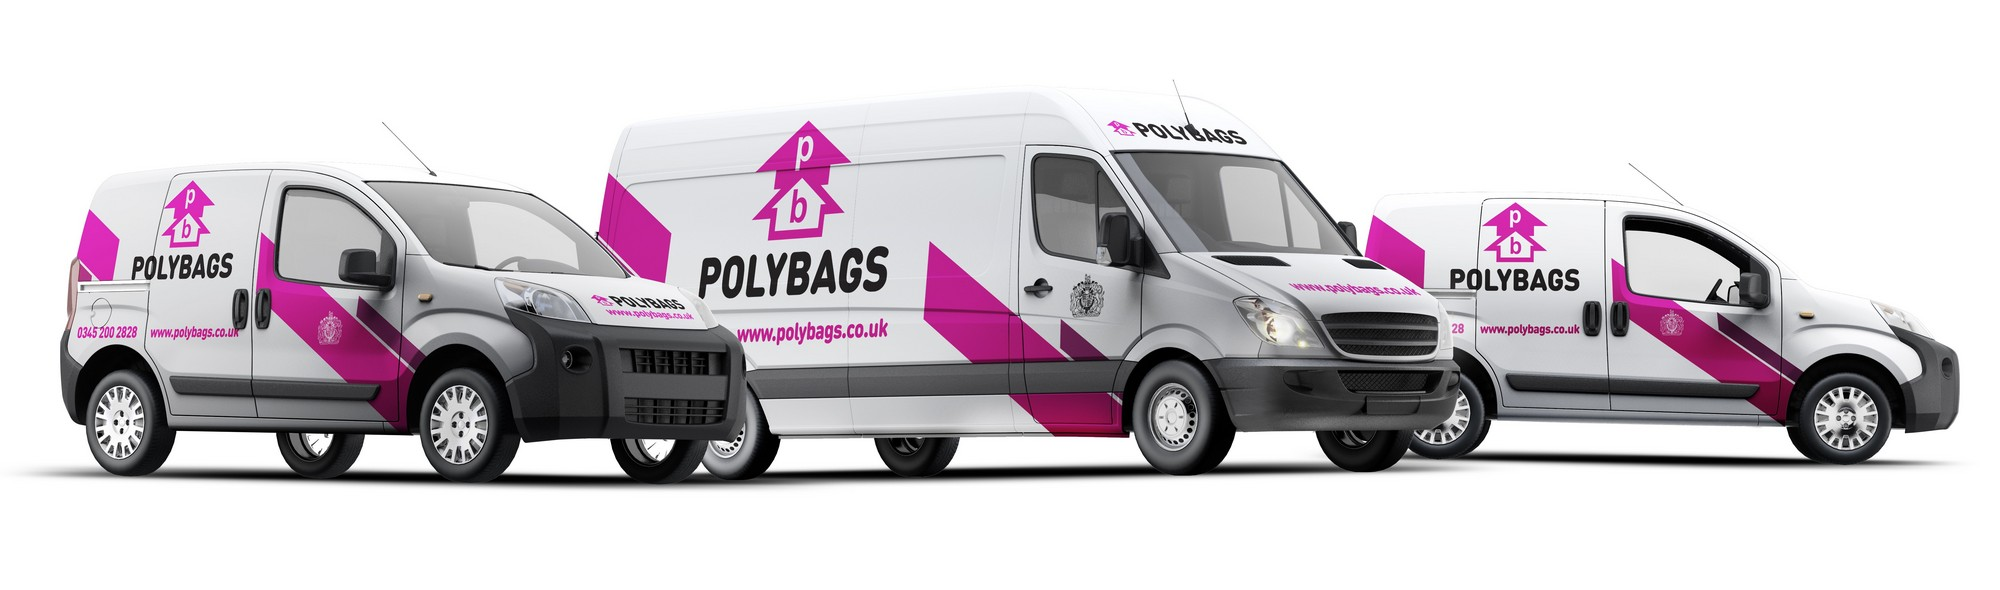 Polybags' delivey vans